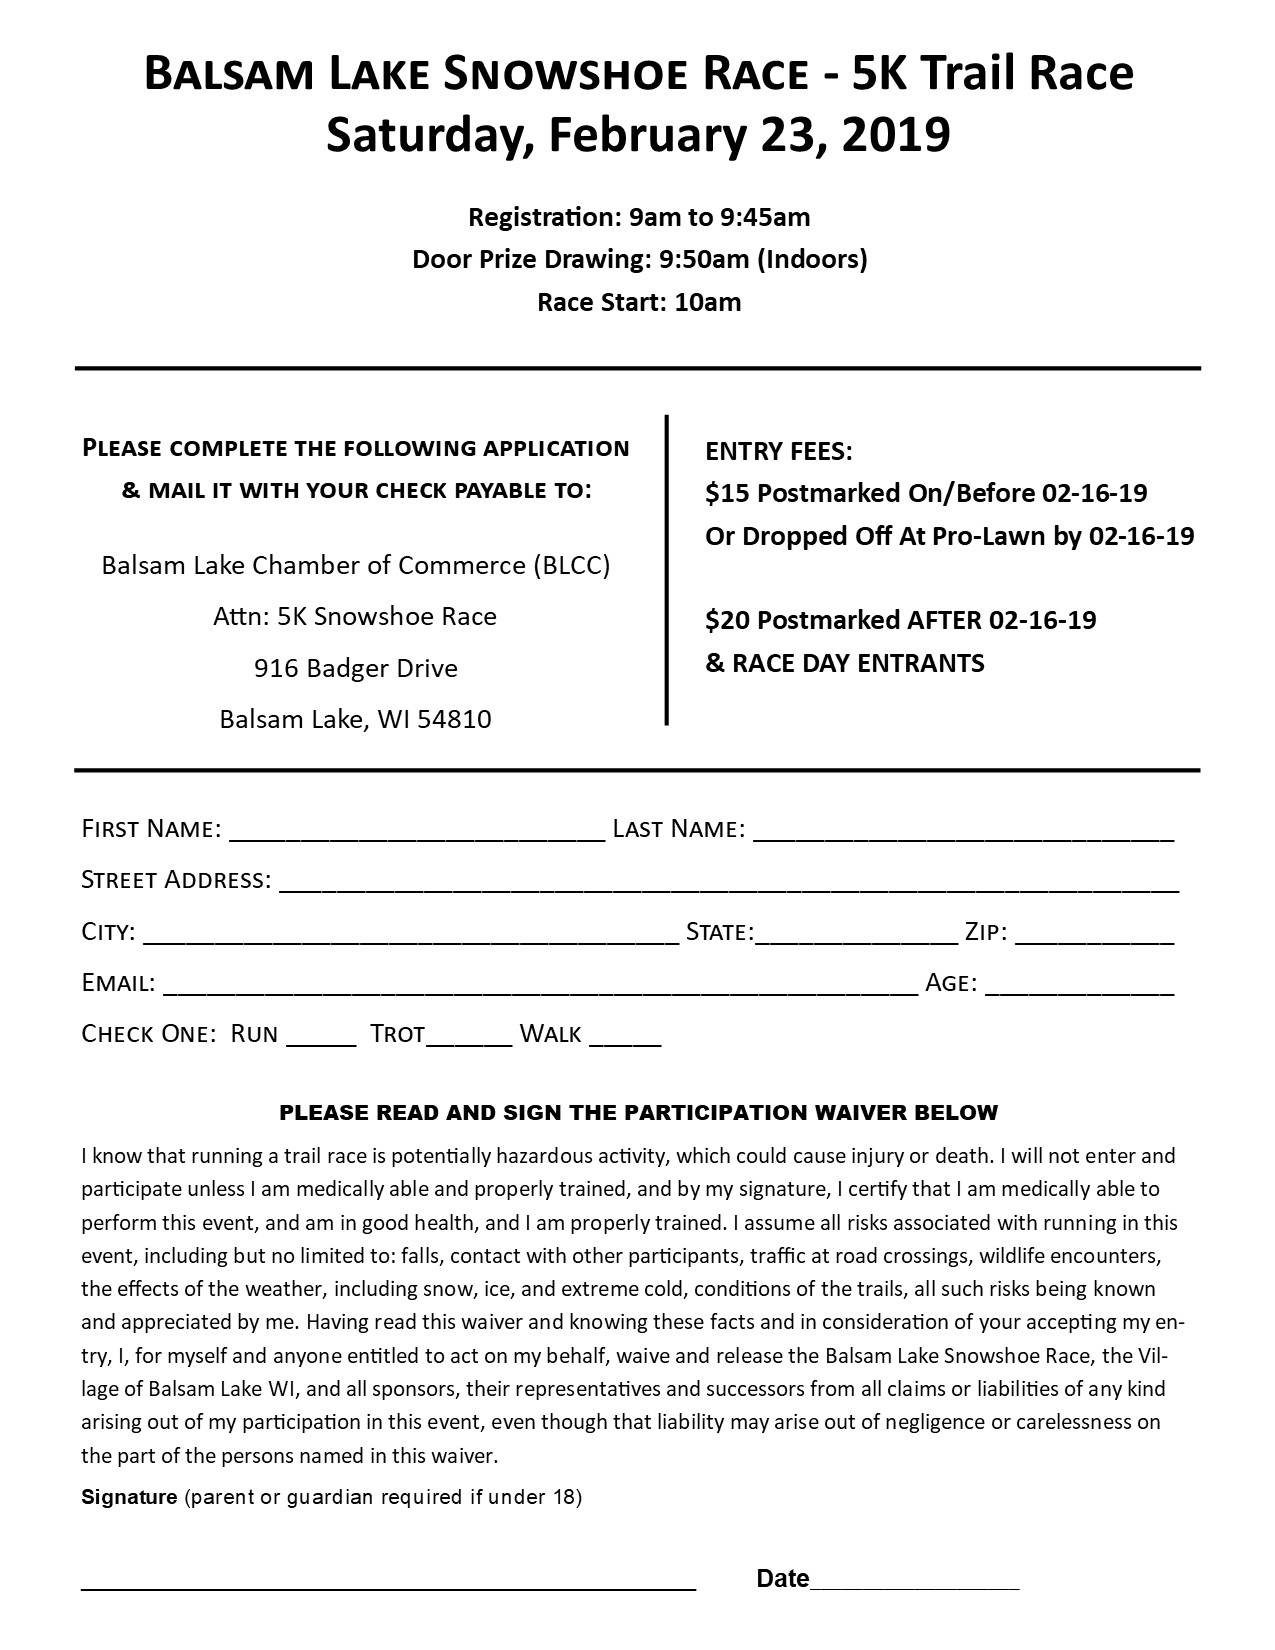 Balsam Lake Snowshoe Race Registration Form